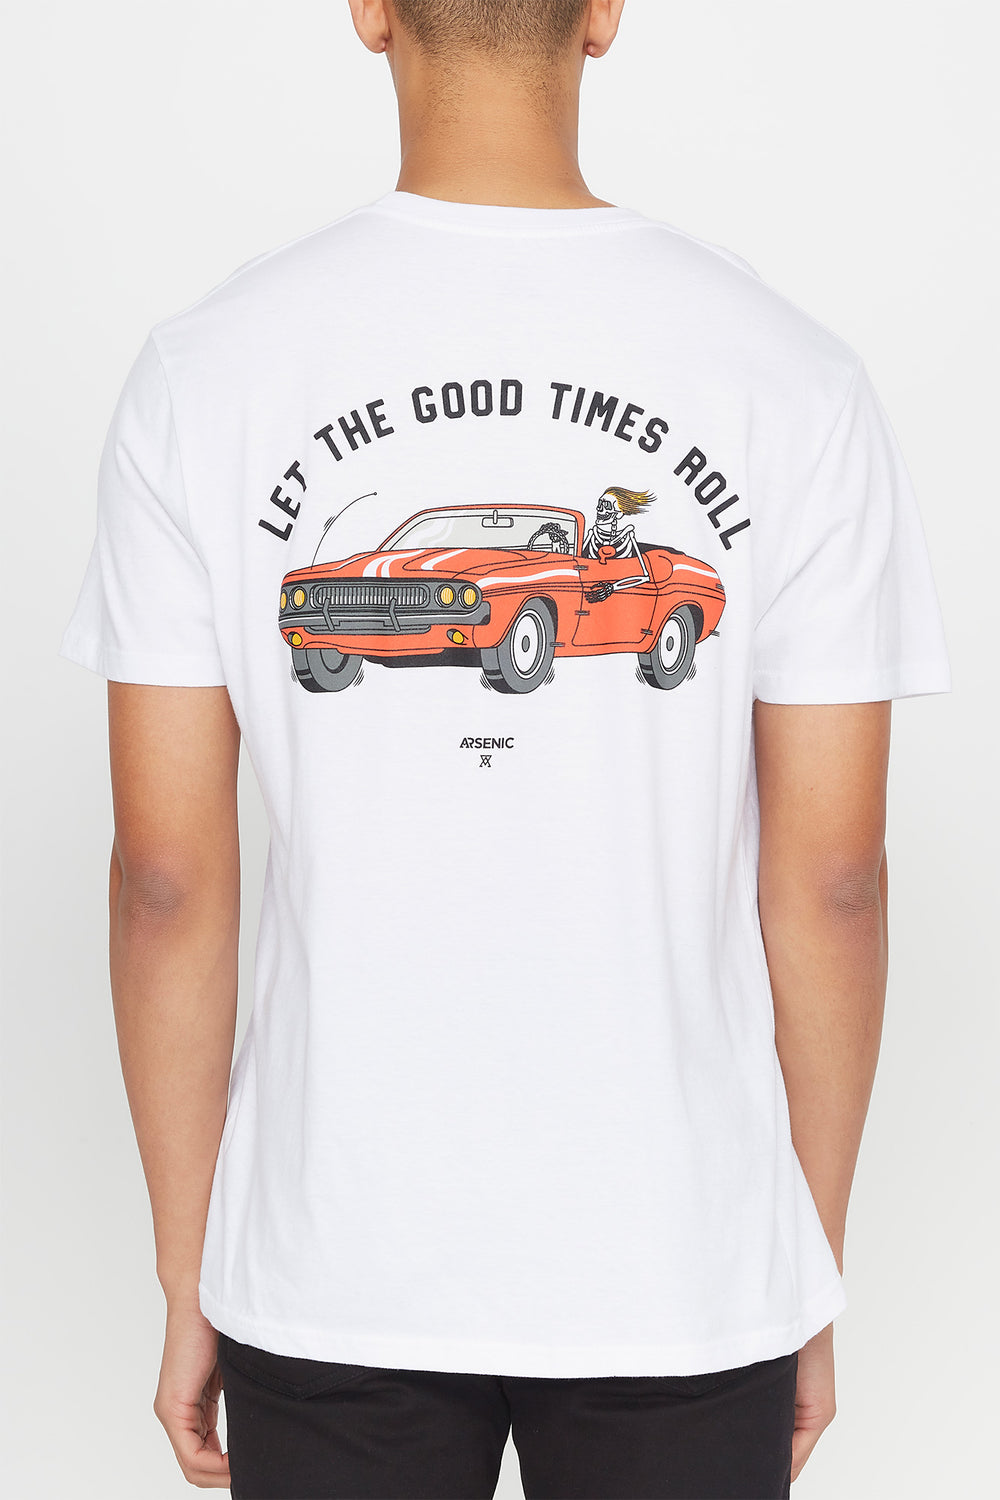 Arsenic Mens Let the Good Times Roll T-Shirt White